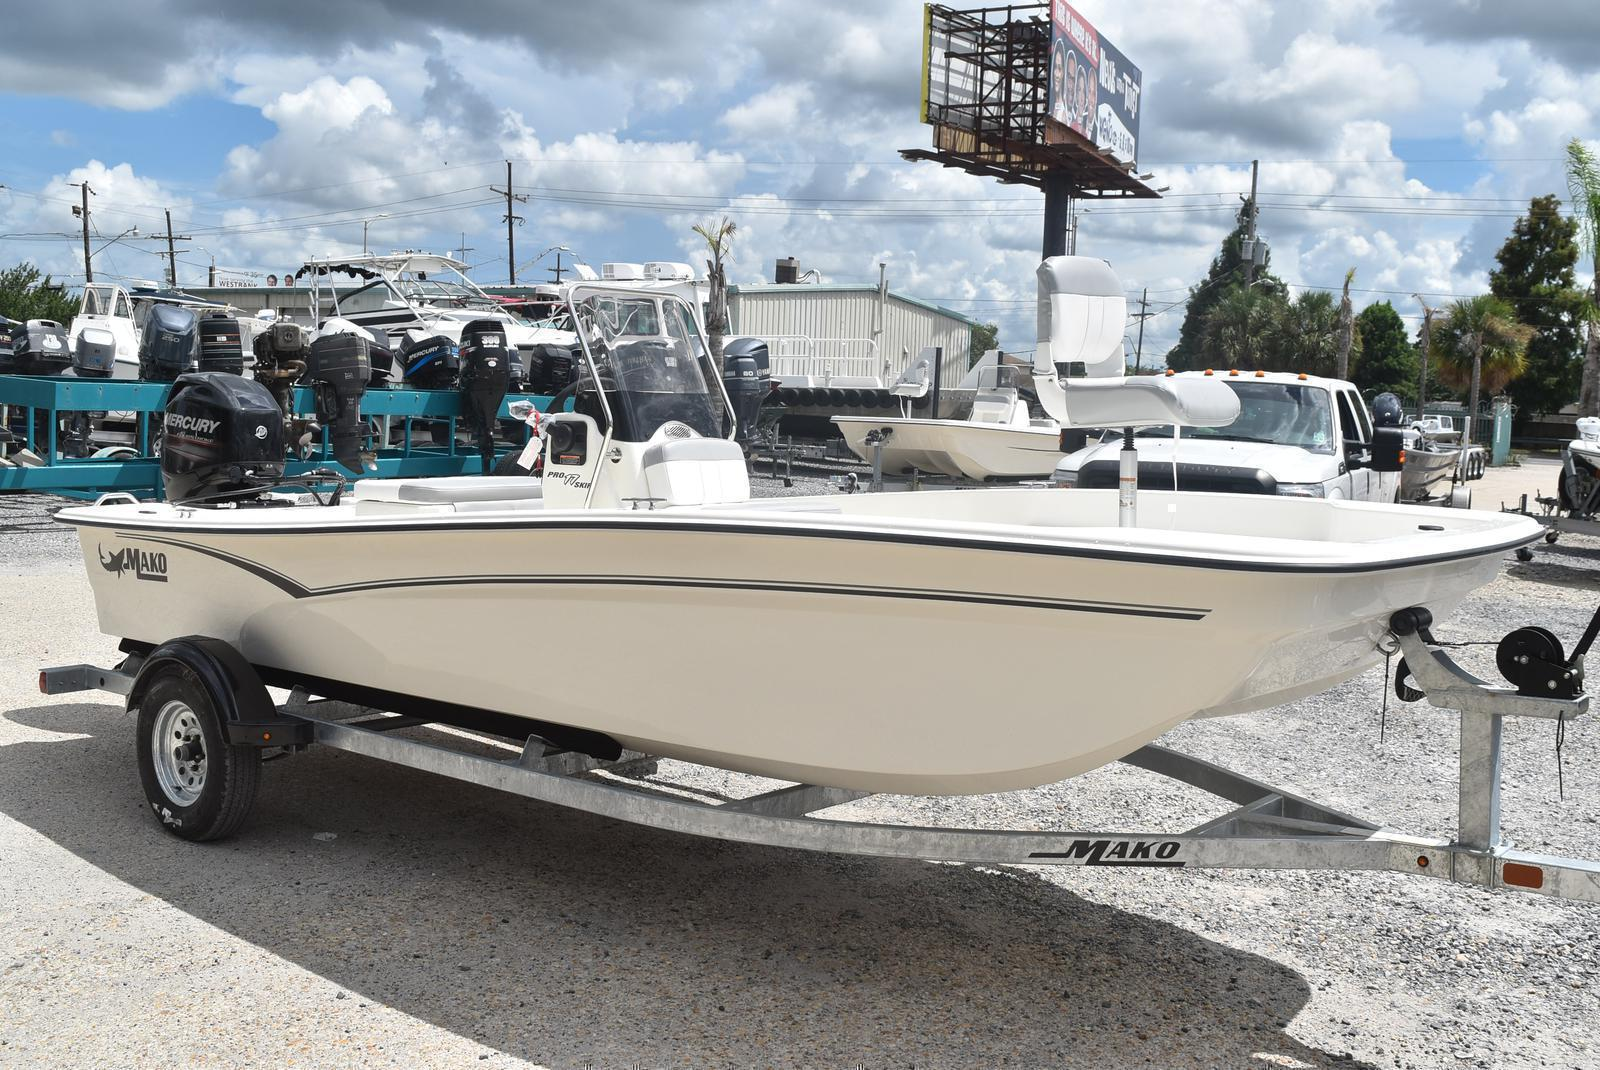 2020 Mako boat for sale, model of the boat is Pro Skiff 17, 75 ELPT & Image # 666 of 702